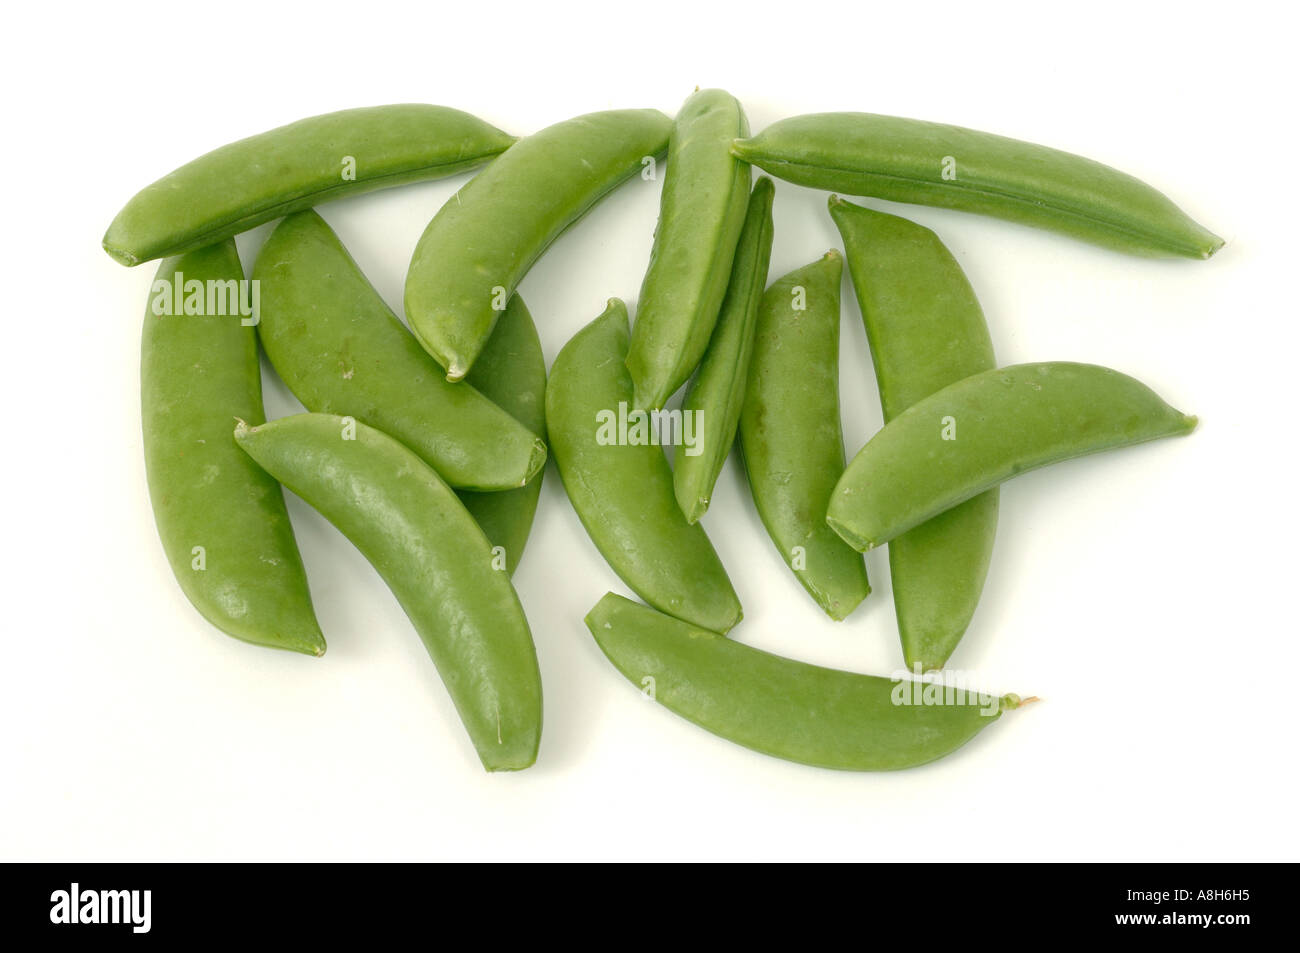 Vegetable produce typical supermarket bought sugar snap peas - Stock Image